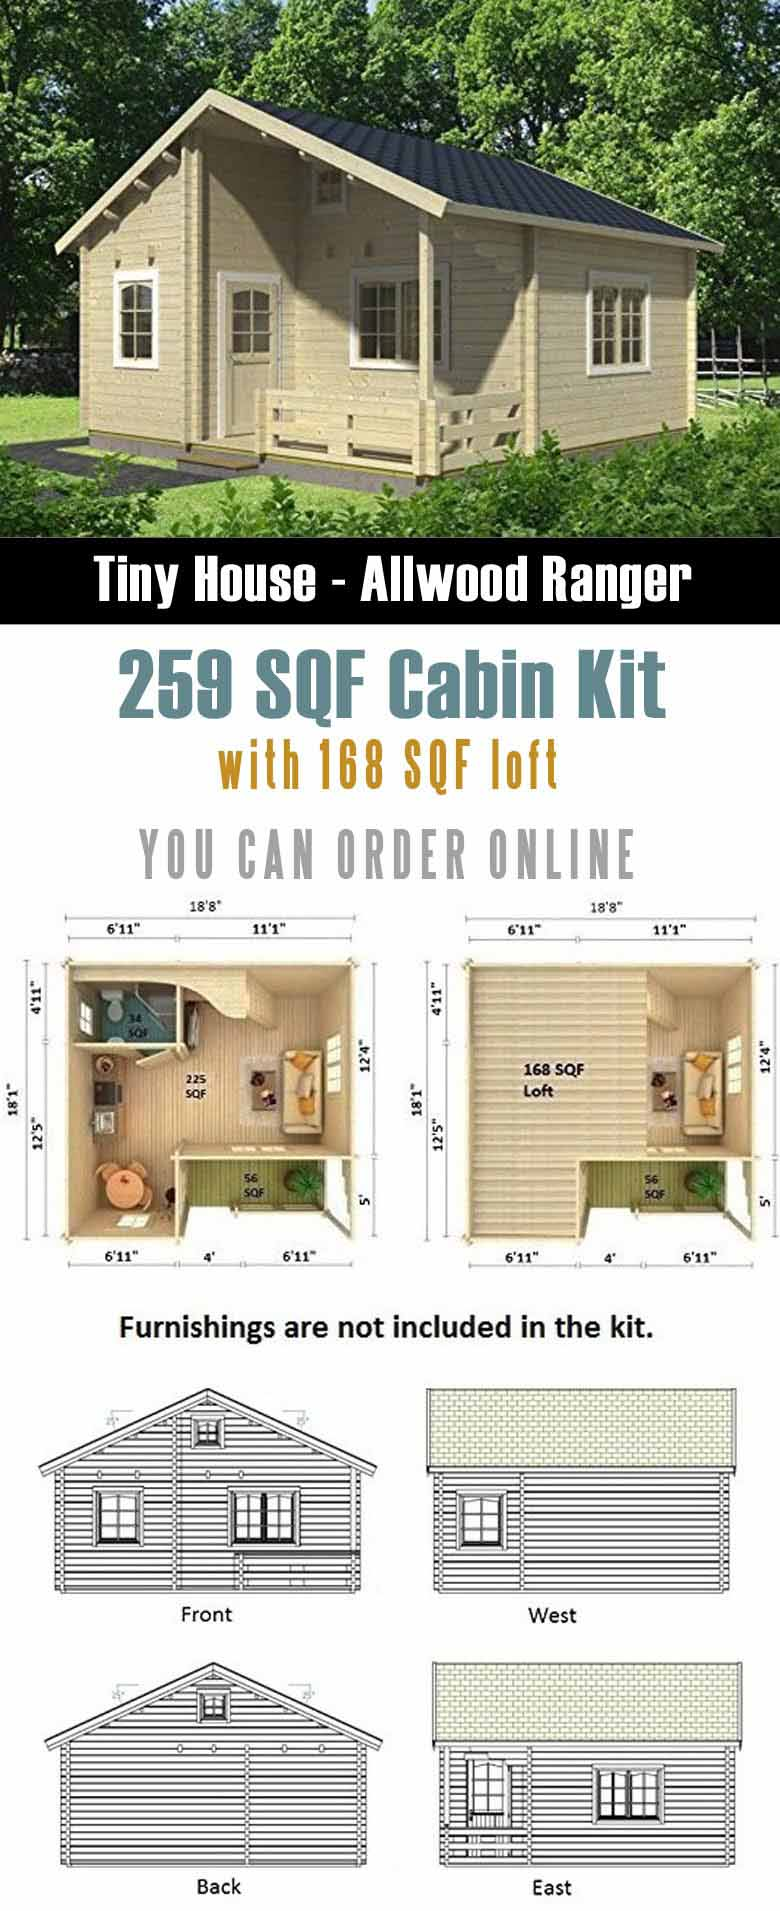 Allwood Ranger Kit Cabin is on of prefab tiny houses that you can order from Amazon